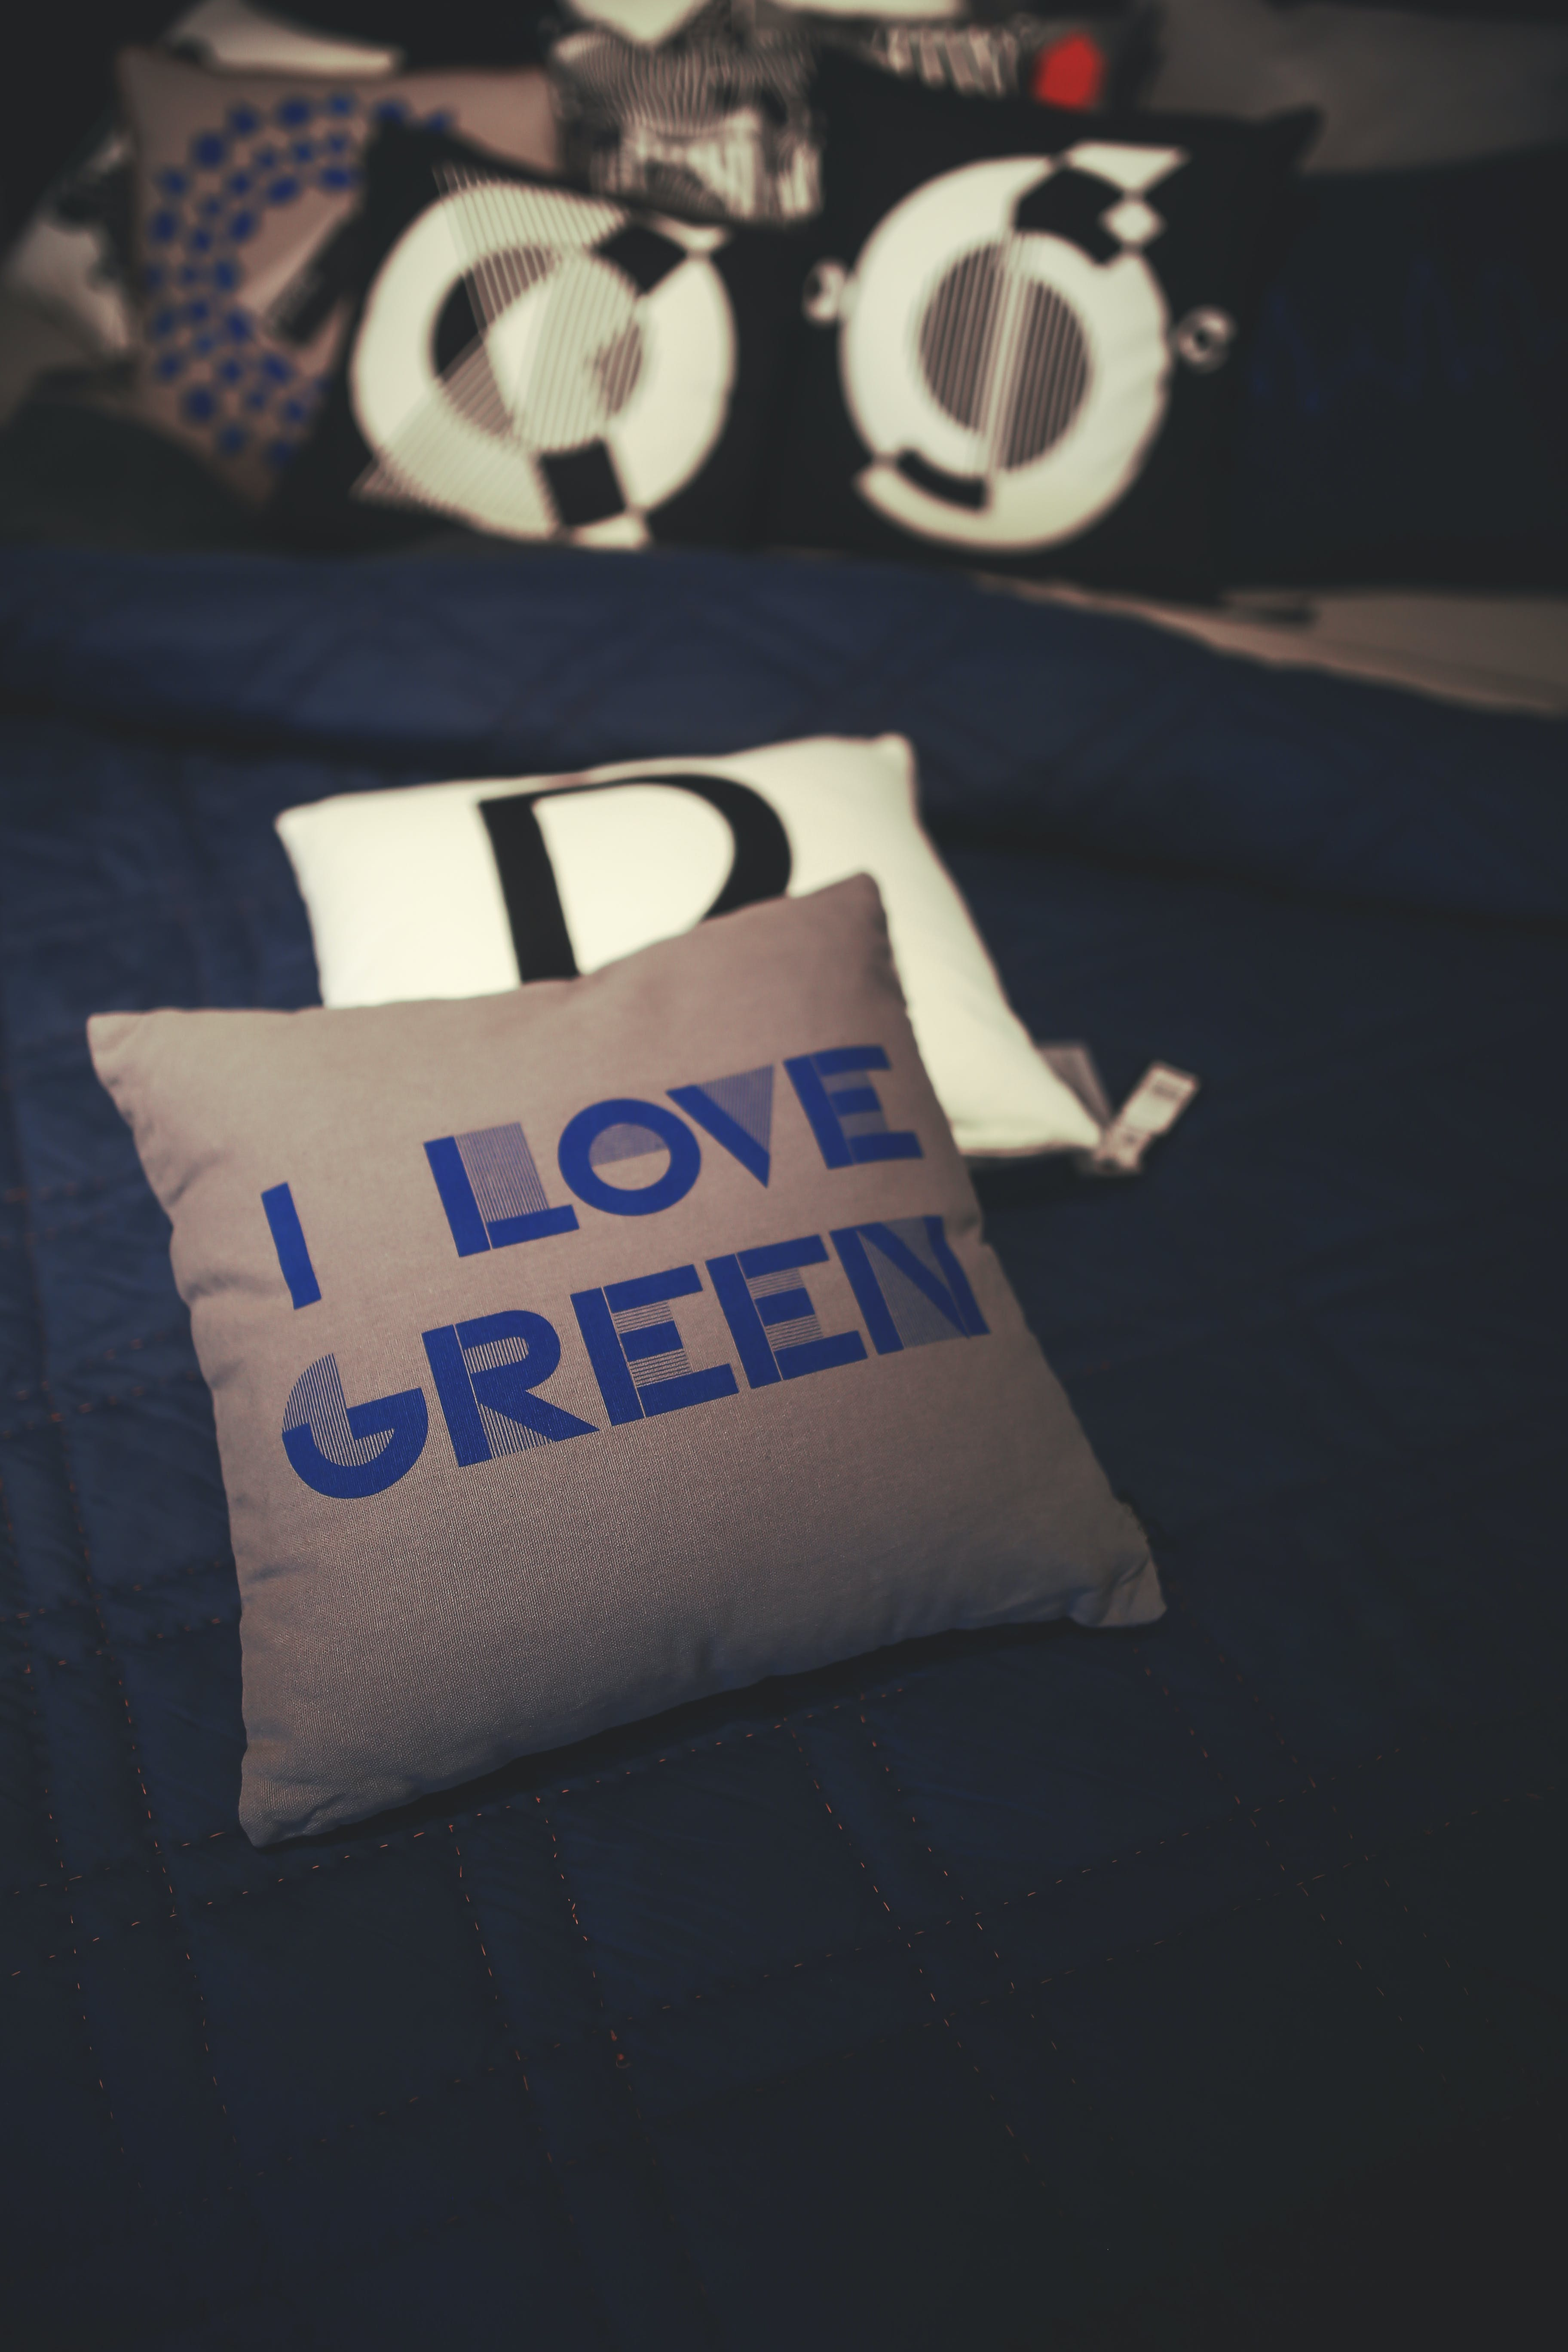 I love green pillow